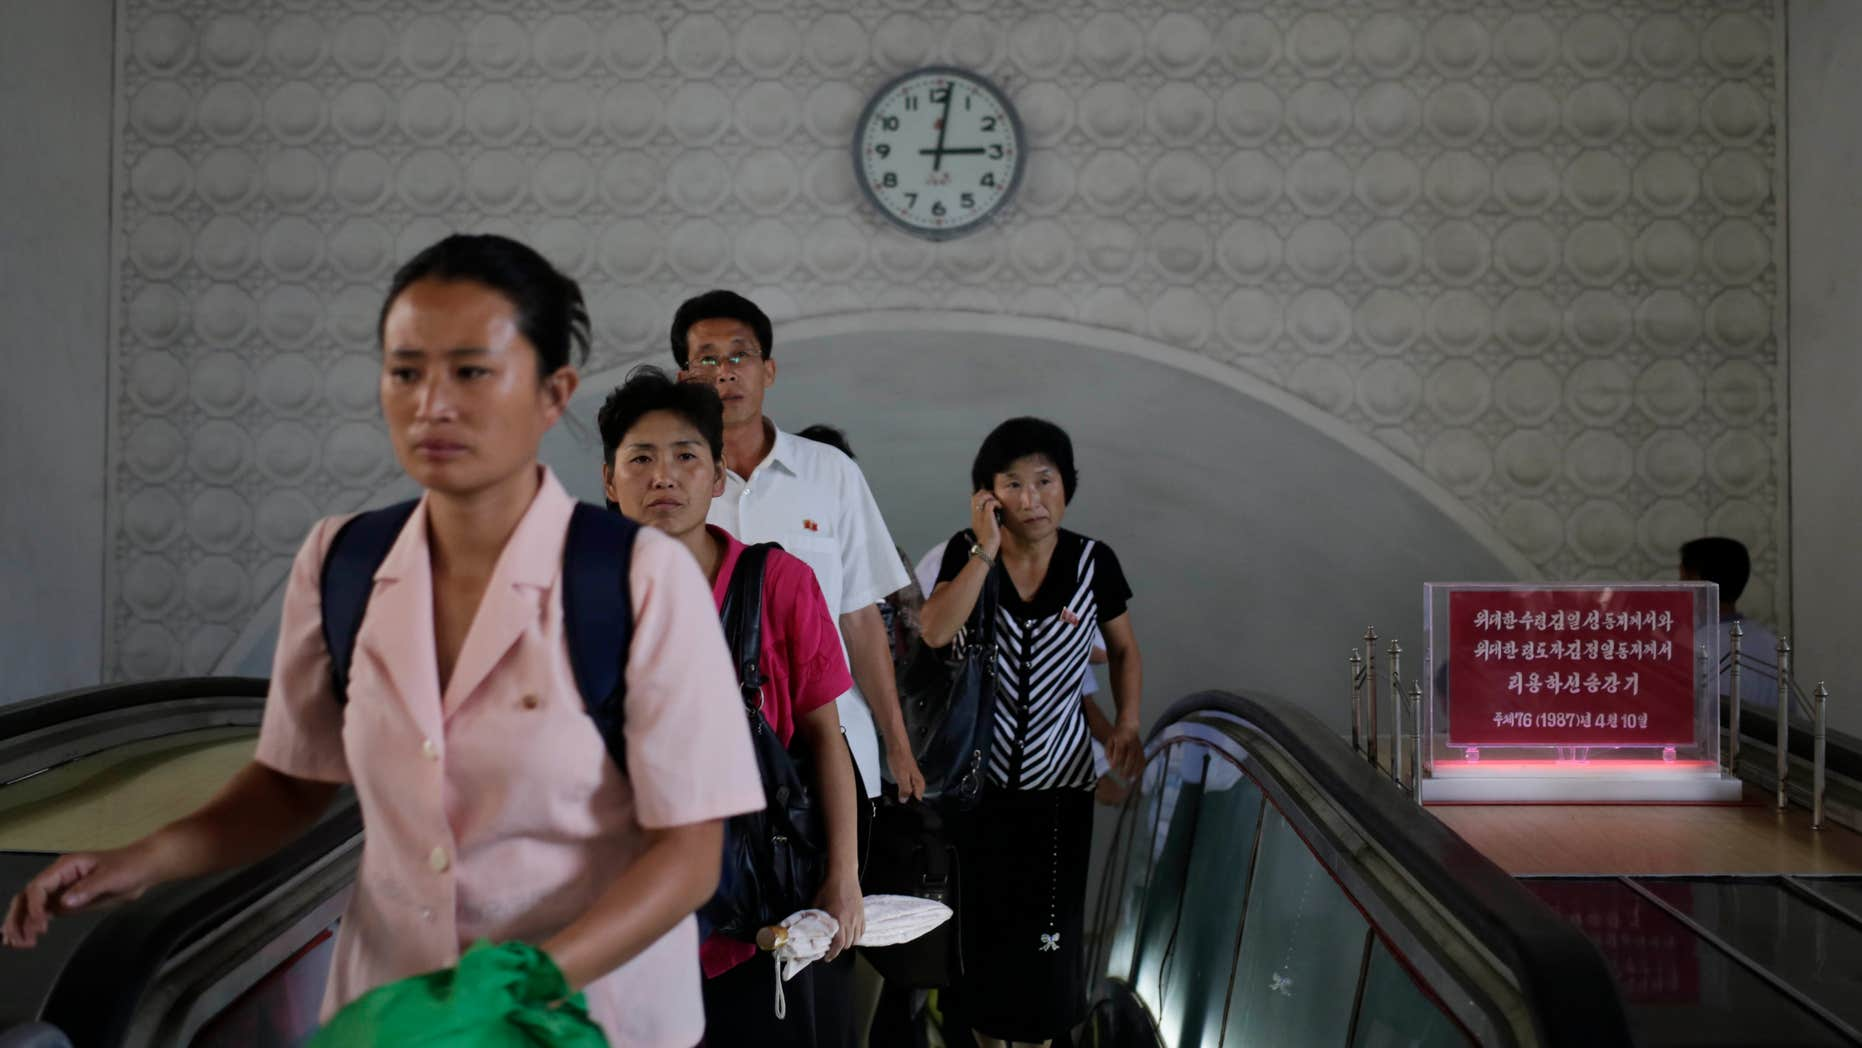 Sept. 1, 2014: A clock hangs on the wall as North Koreans leave an underground train station in Pyongyang, North Korea.